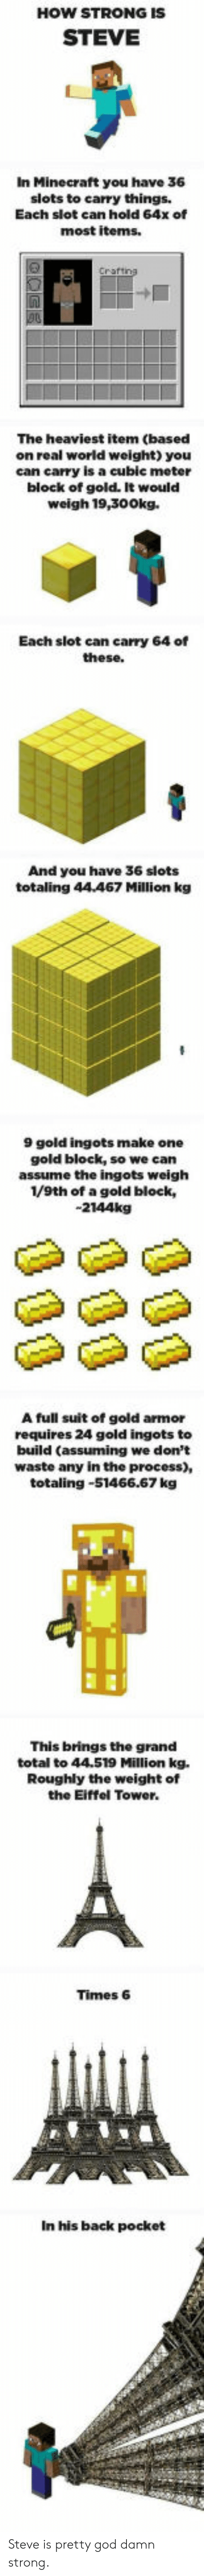 God, Minecraft, and Eiffel Tower: HOW STRONG IS  STEVE  In Minecraft you have 36  slots to carry things.  Each slot can hold 64x of  most iterns.  The heaviest item (based  on real world weight) you  can carry is a cubic meter  block of gold. It would  weigh 19,300kg.  Each slot can carry 64 of  And you have 36 slots  totaling 44467 Million kg  9 gold ingots make one  gold block, so we can  assume the ingots weigh  1/9th of a gold block,  -2144kg  A full suit of gold armor  requires 24 gold ingots to  build (assuming we don't  waste any in the process),  totaling-51466.67 kg  This brings the grand  total to 44.519 Million kg.  Roughly the weight of  the Eiffel Tower.  Times 6  In his back pocket Steve is pretty god damn strong.